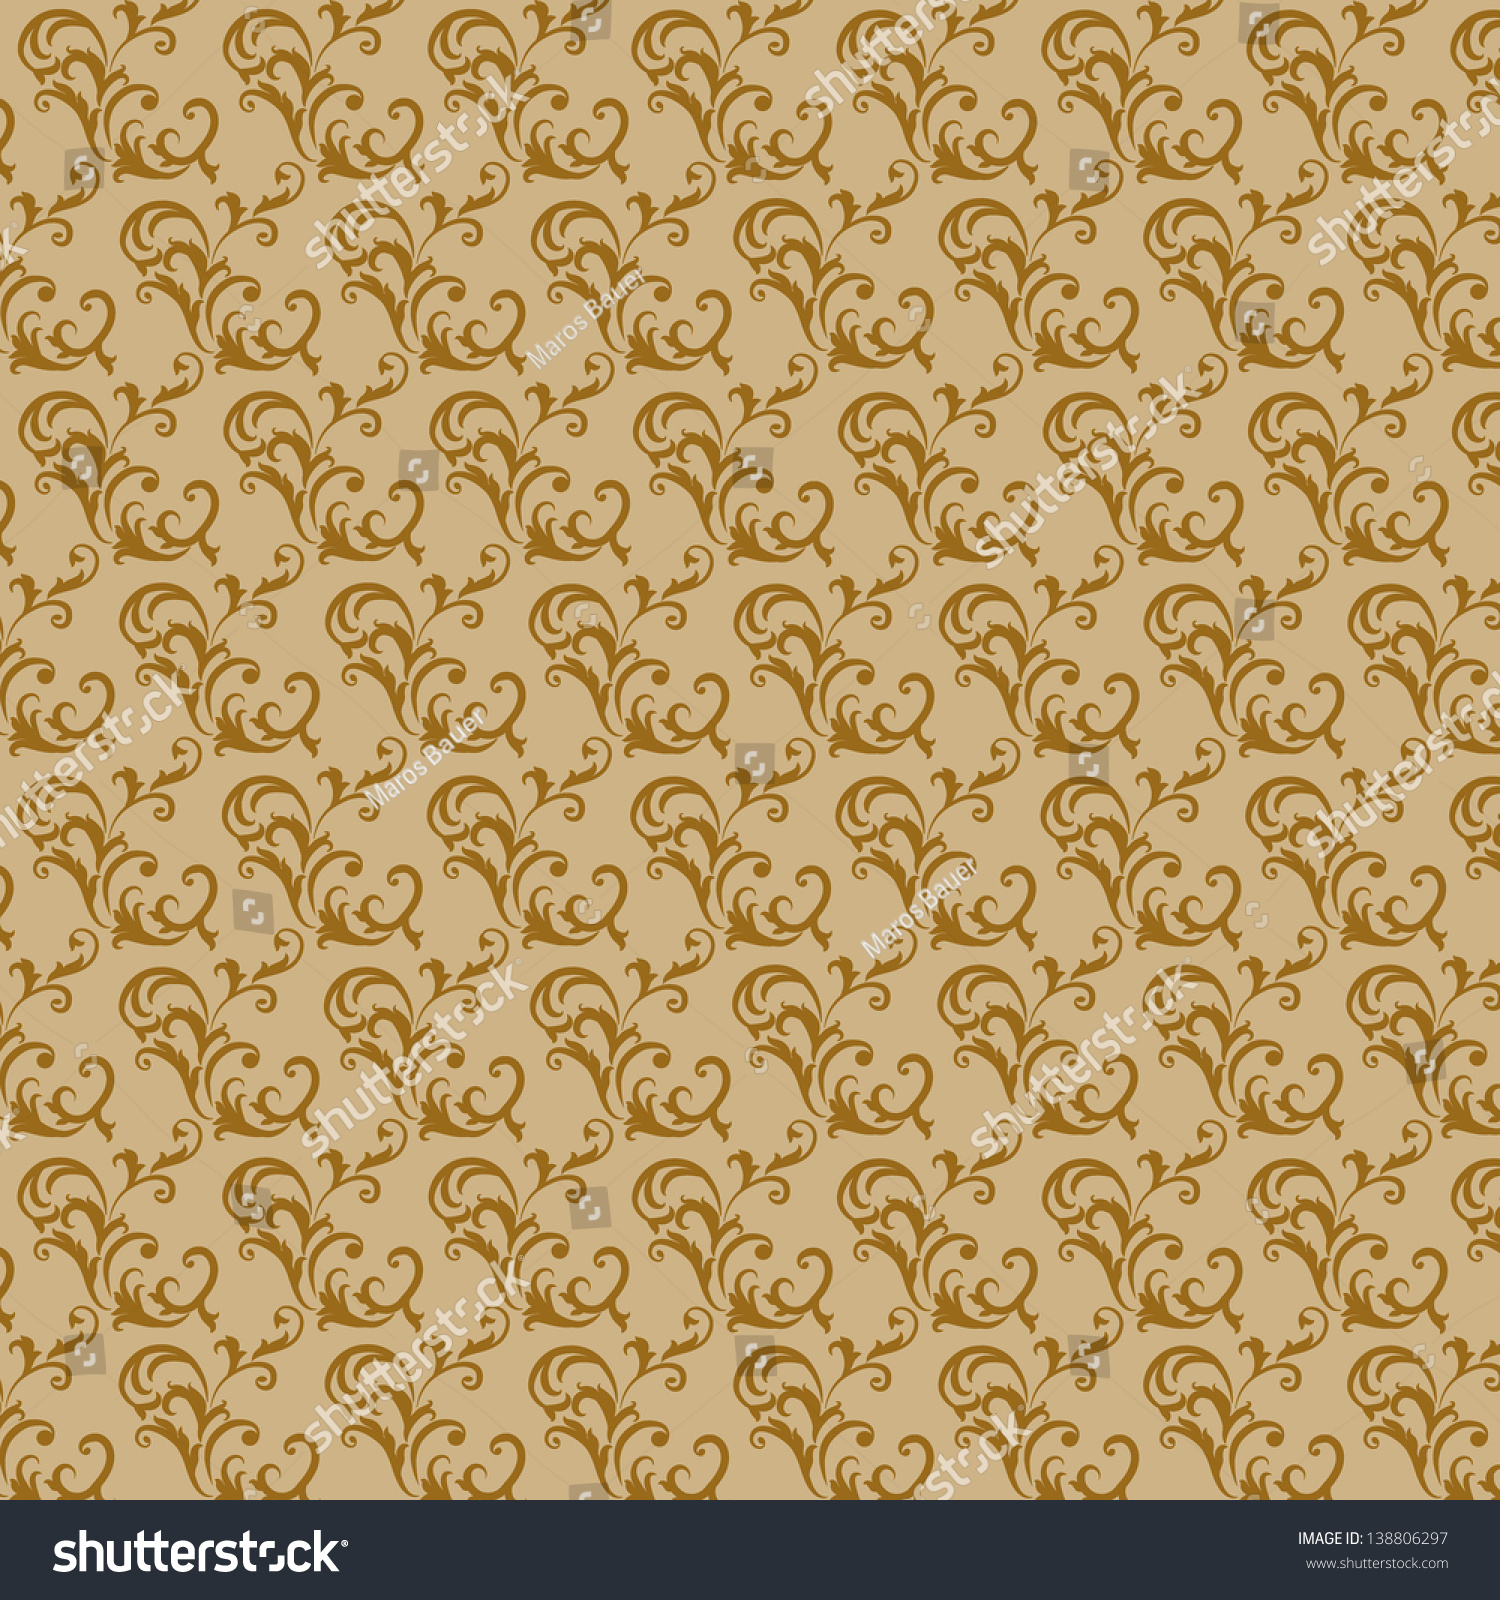 Interesting Retro Wallpaper In The Old Style Brown Swirls Patterns On A Pale Background